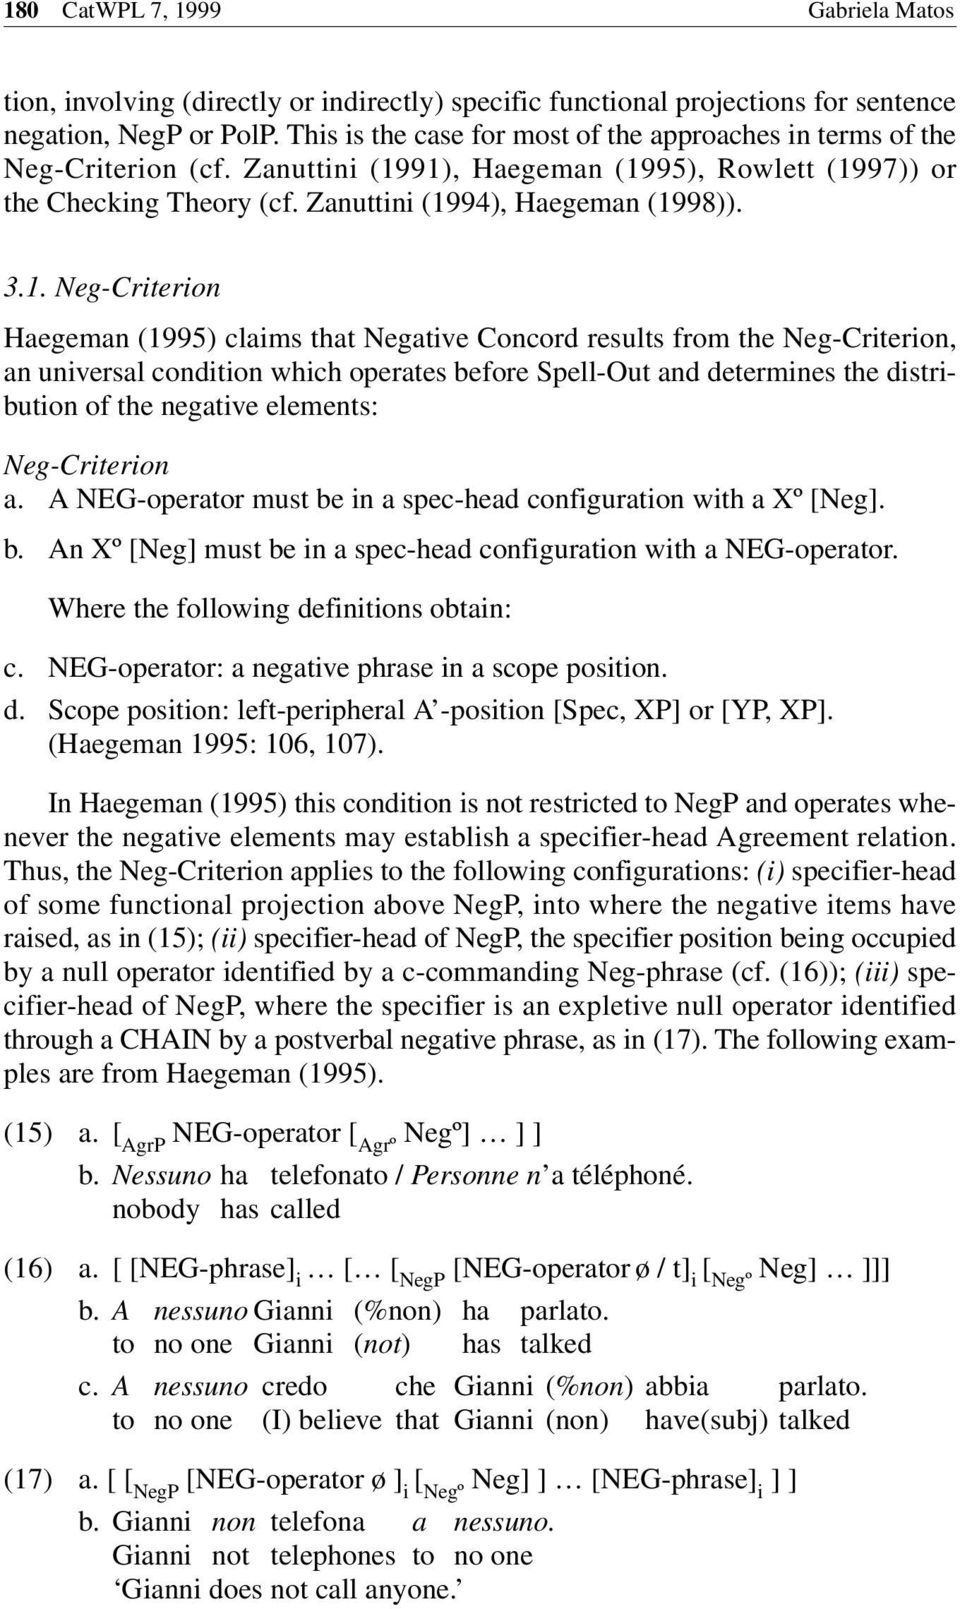 91), Haegeman (1995), Rowlett (1997)) or the Checking Theory (cf. Zanuttini (1994), Haegeman (1998)). 3.1. Neg-Criterion Haegeman (1995) claims that Negative Concord results from the Neg-Criterion,